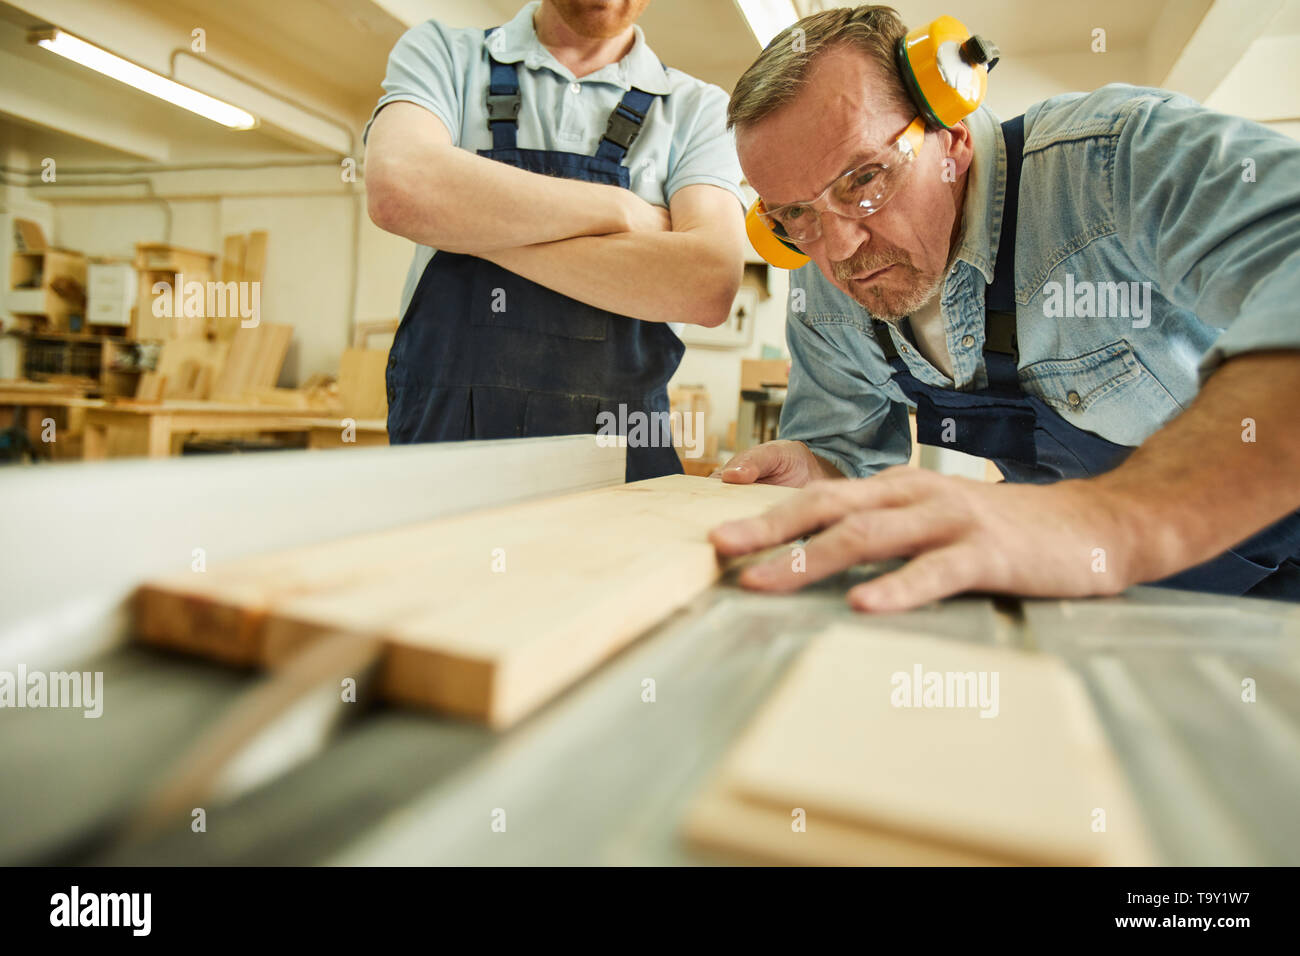 Portrait of  carpenter cutting wood using disksaw while working in joinery workshop, copy space - Stock Image